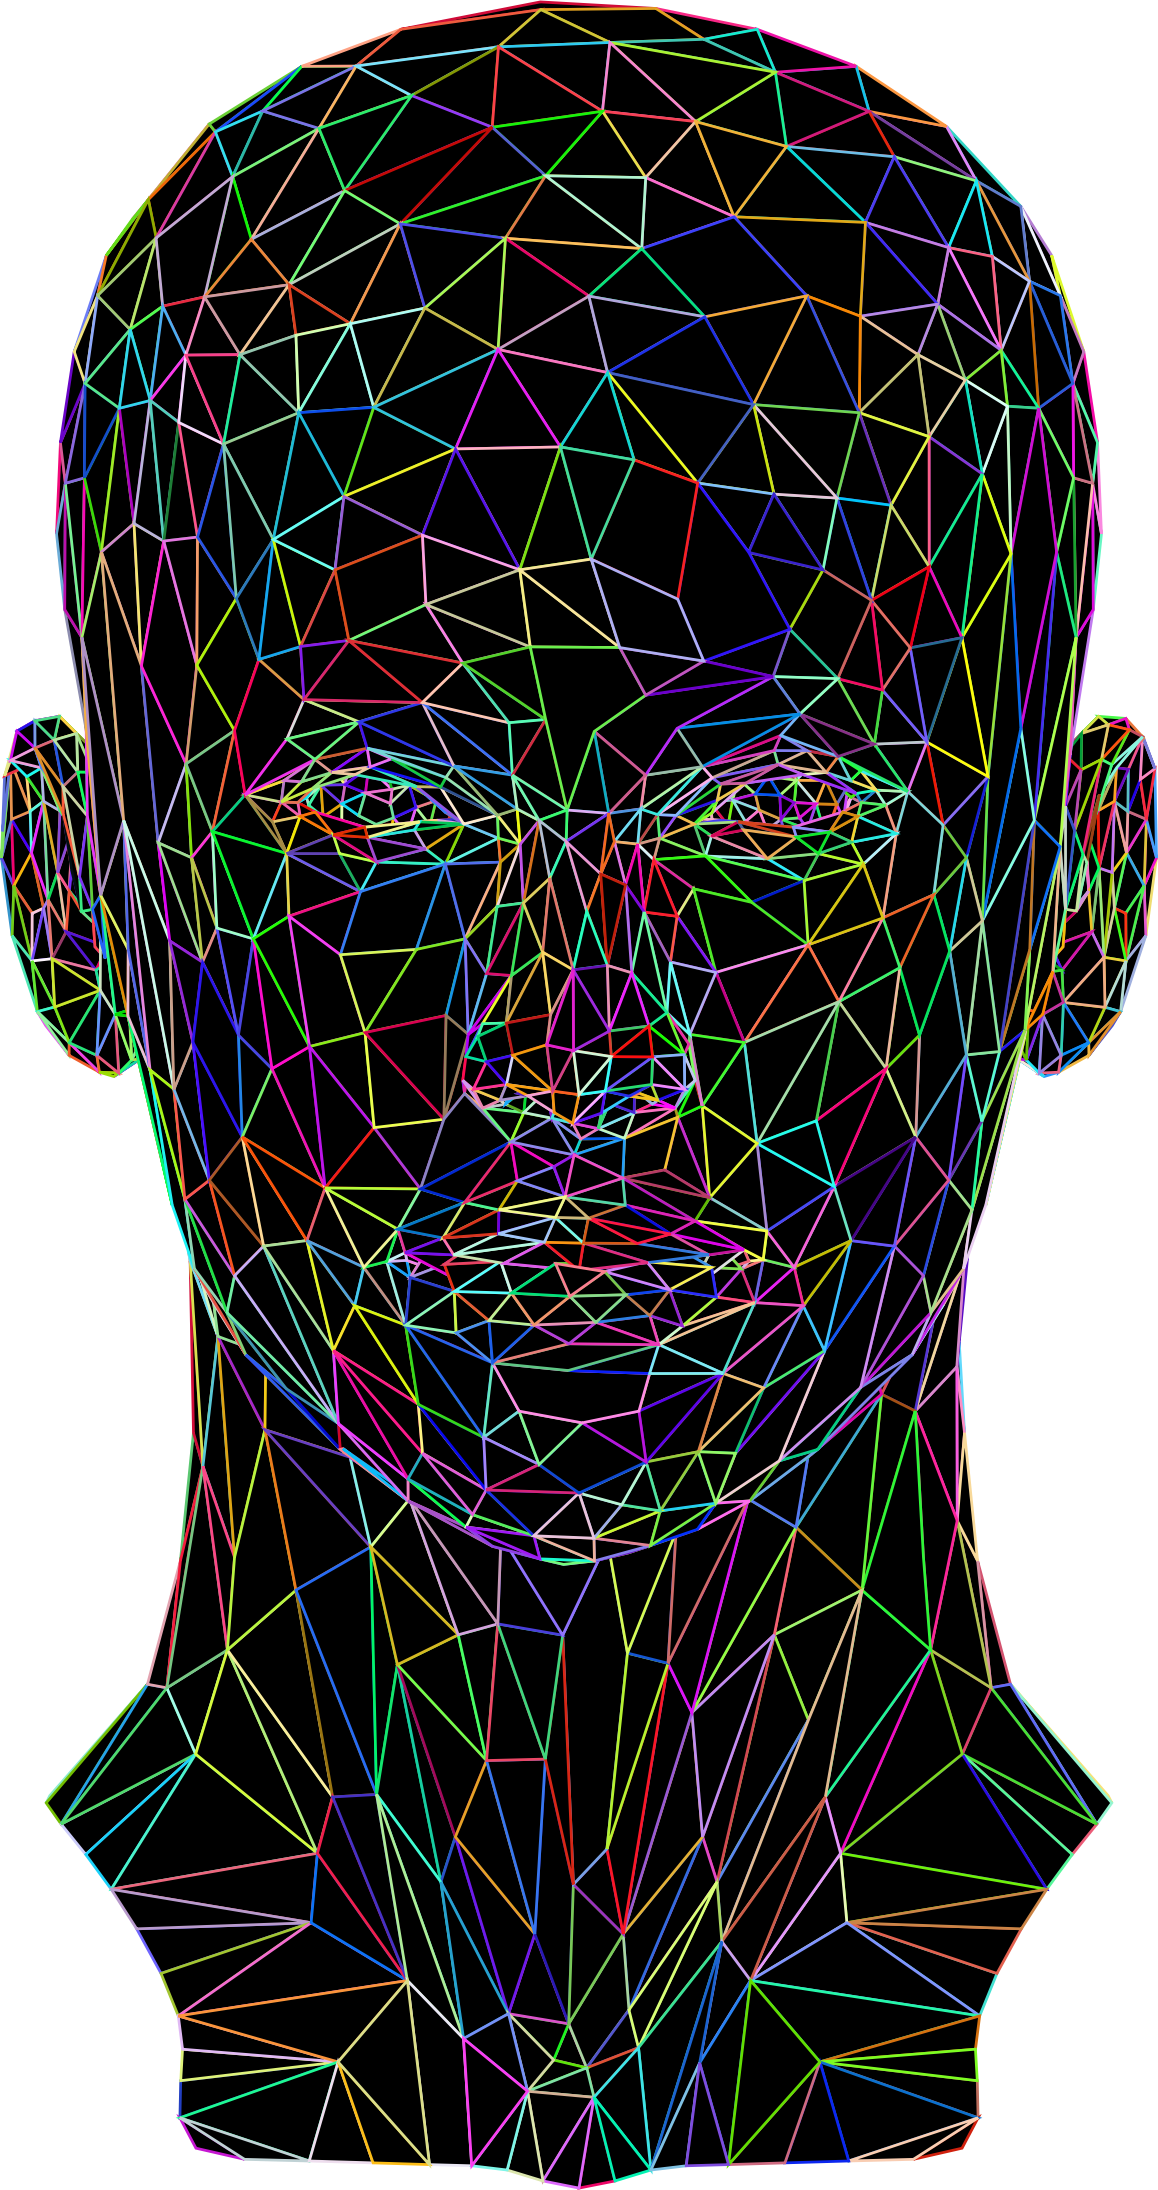 Prismatic Low Poly Female Head Wireframe by GDJ